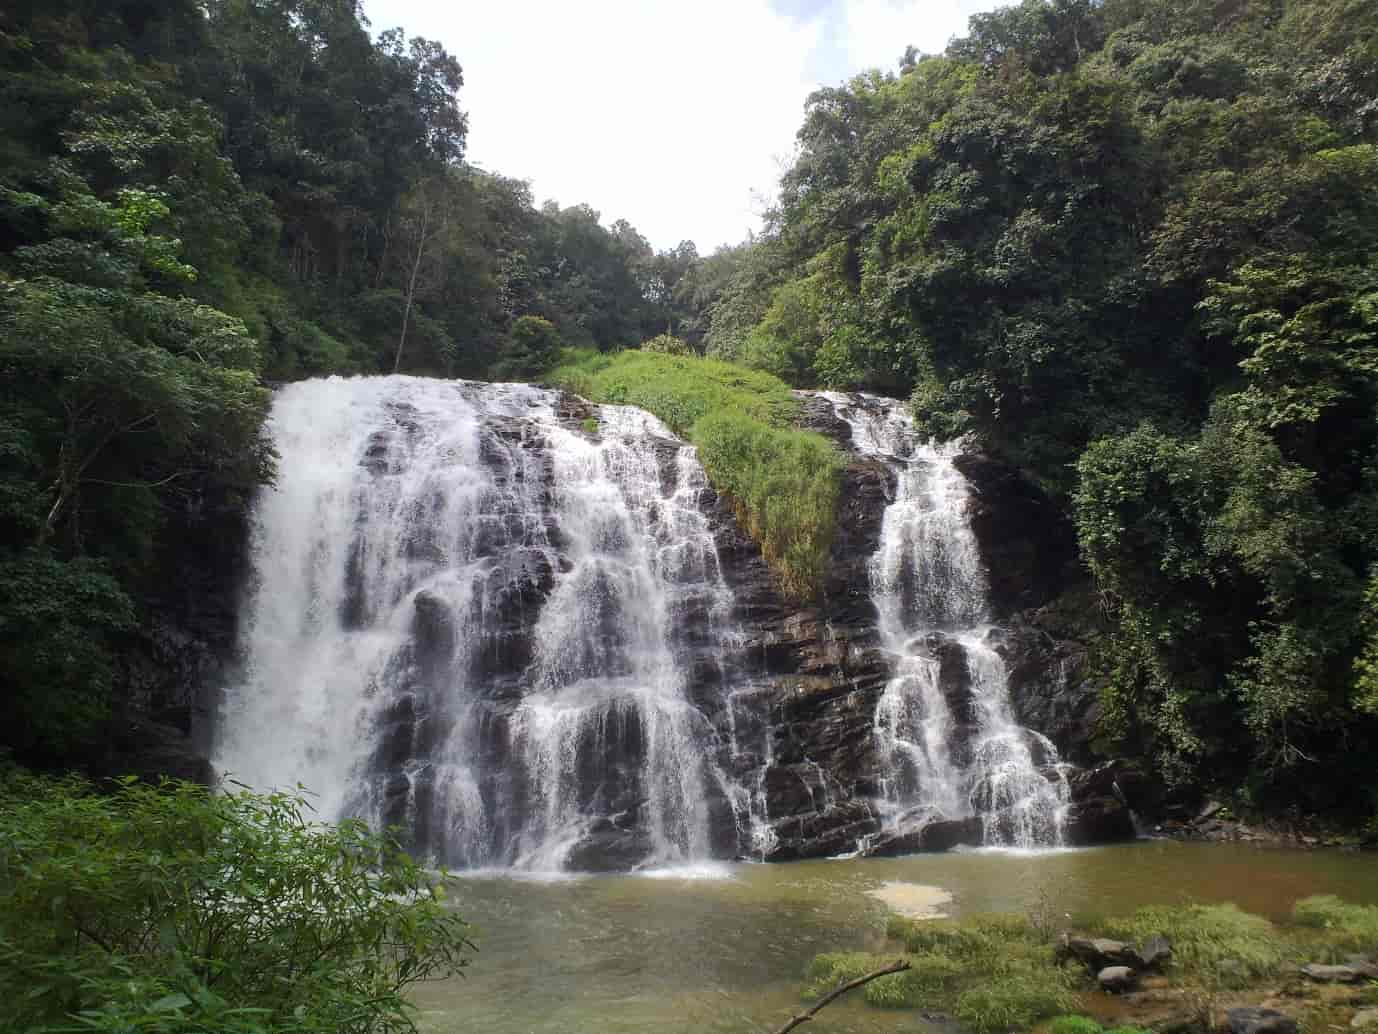 Abbey-Falls-to-Nisargadhama-Coorg-is-25-km.-The-river-from-which-this-waterfall-flows-is-part-of-early-reaches-of-Kaveri